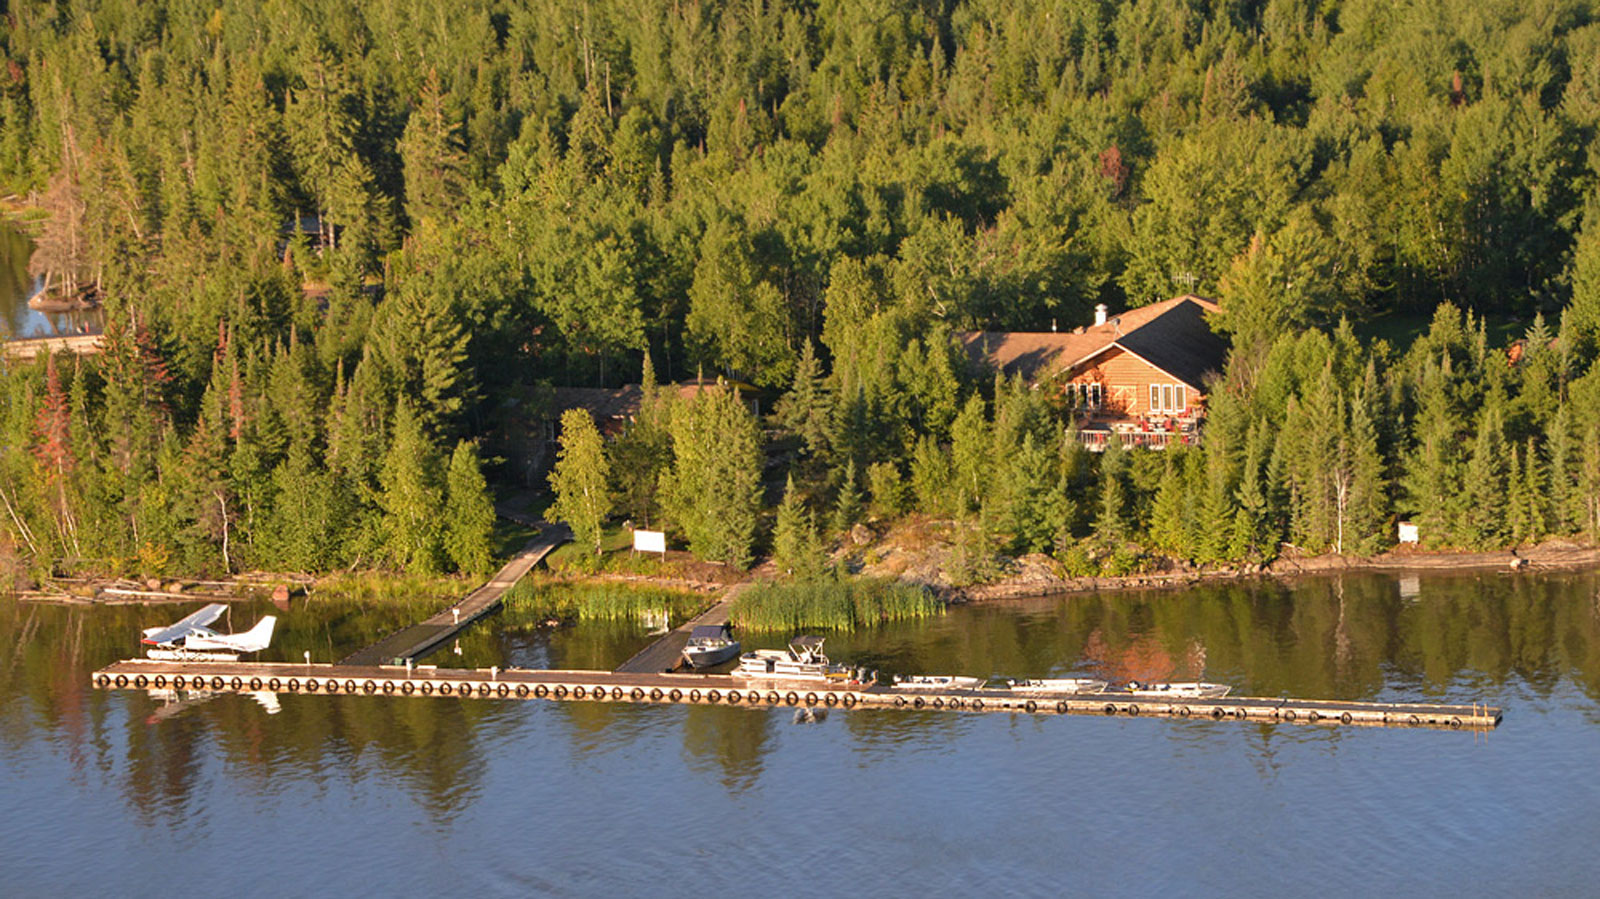 Aerial view of the dock in front of the Lodge at Kettle Falls